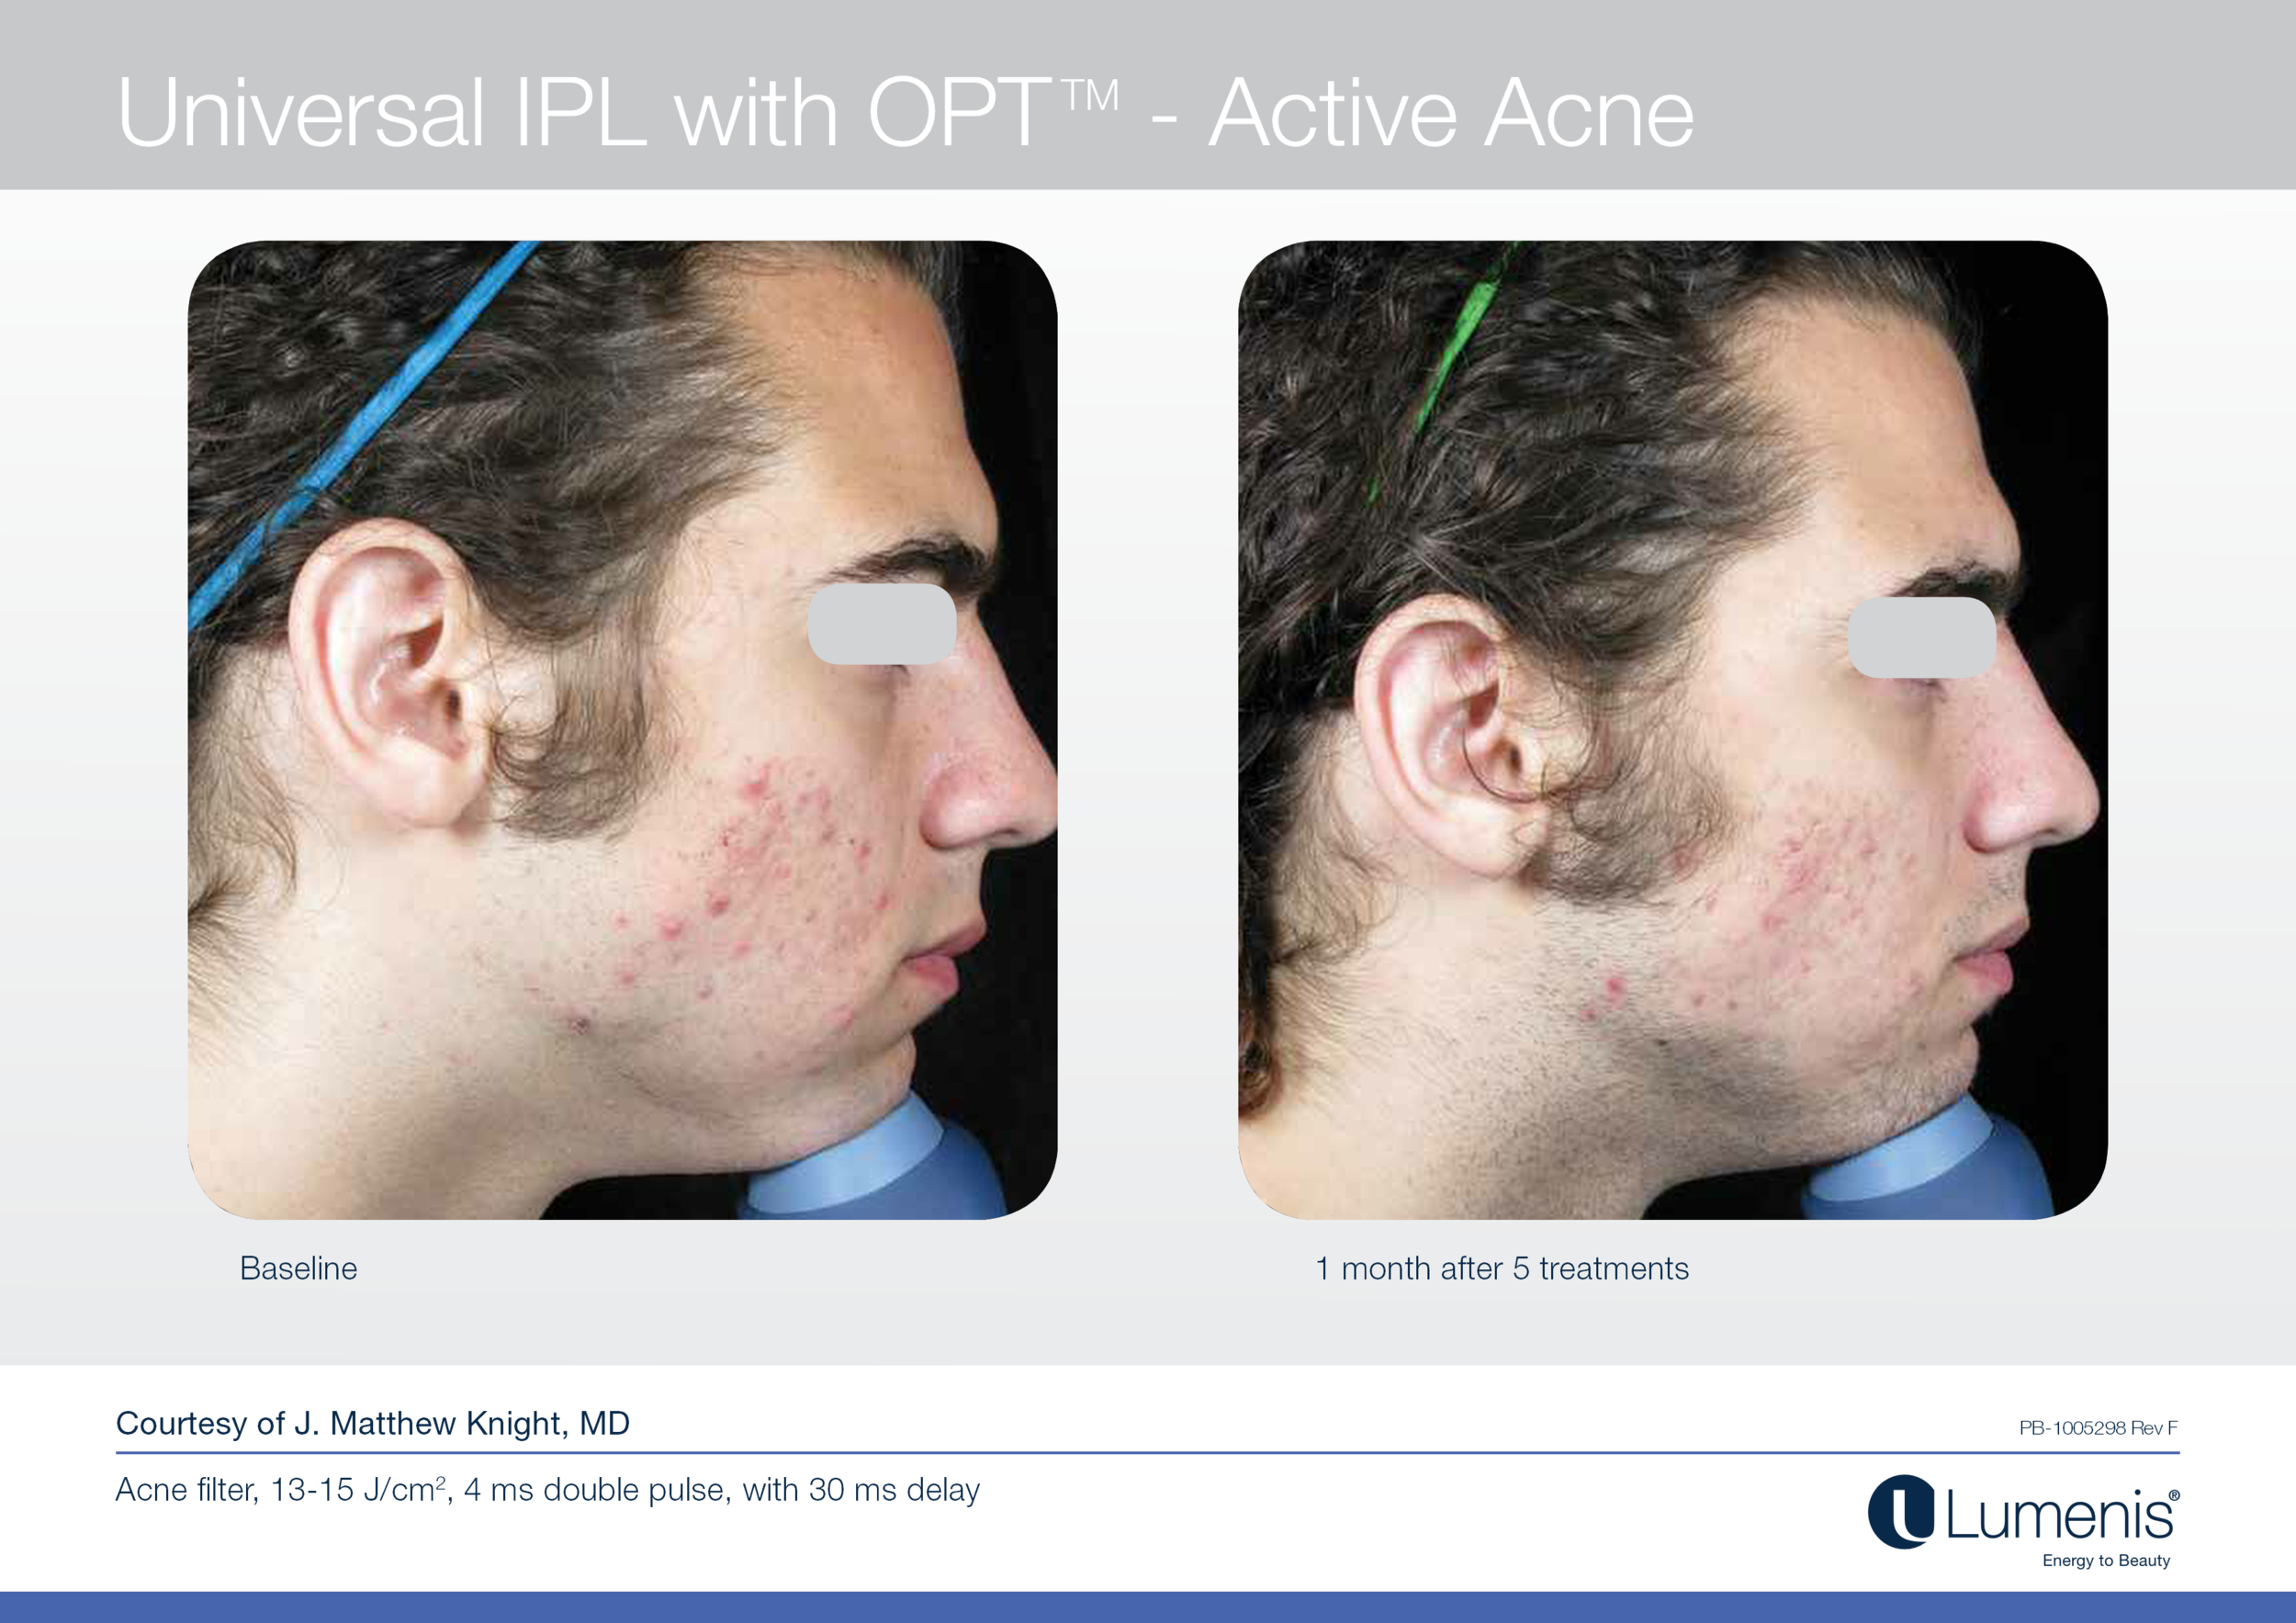 Acne Reduction Treatments